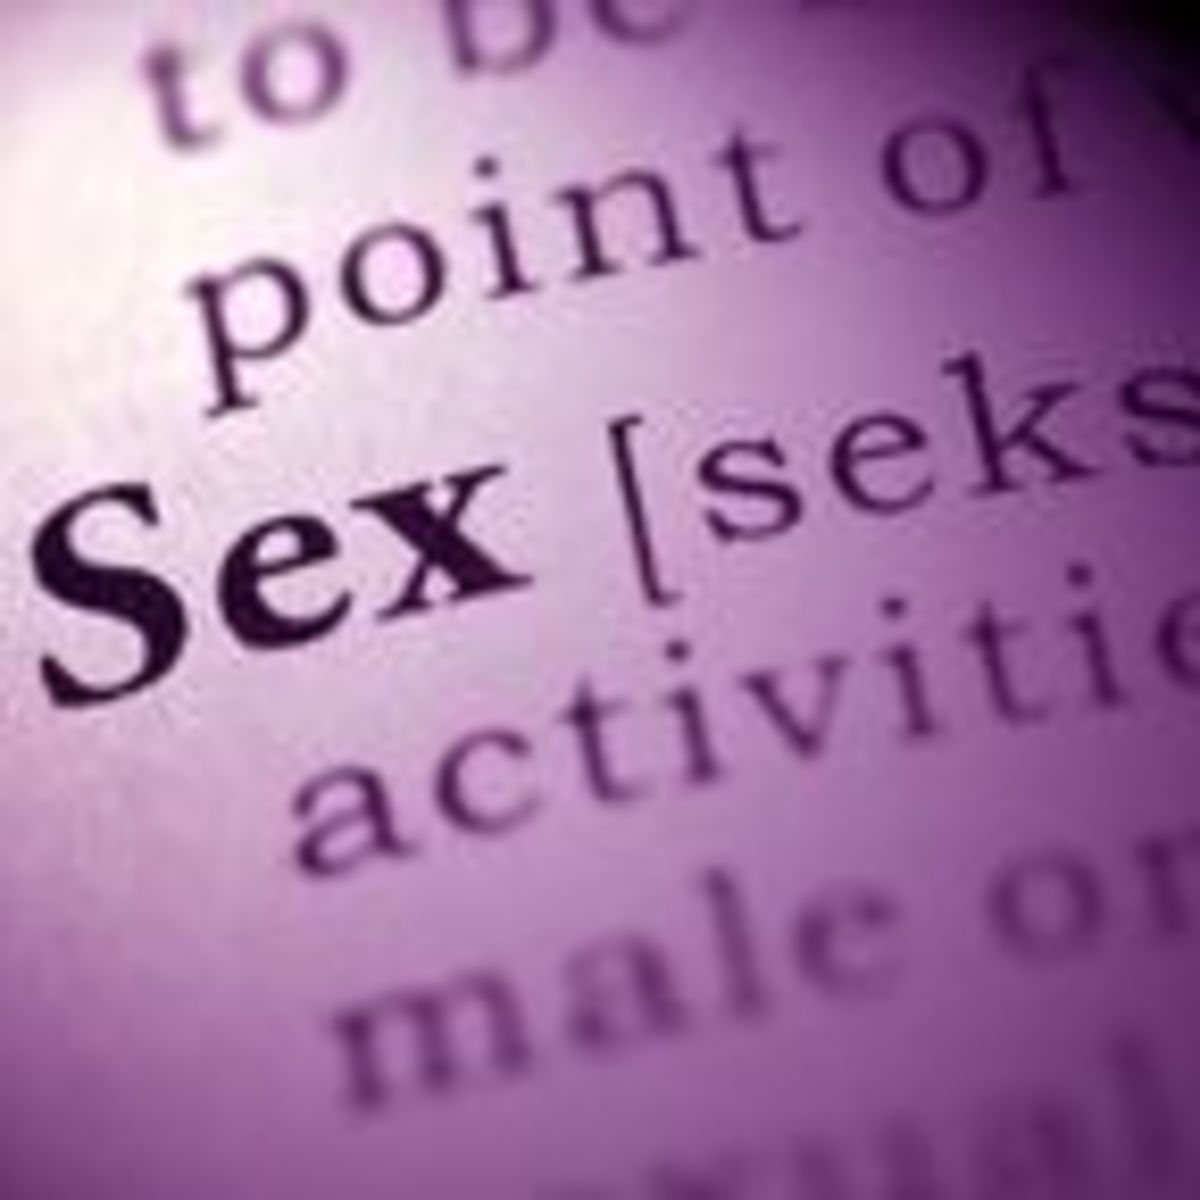 sexual behavior standard benefits single of